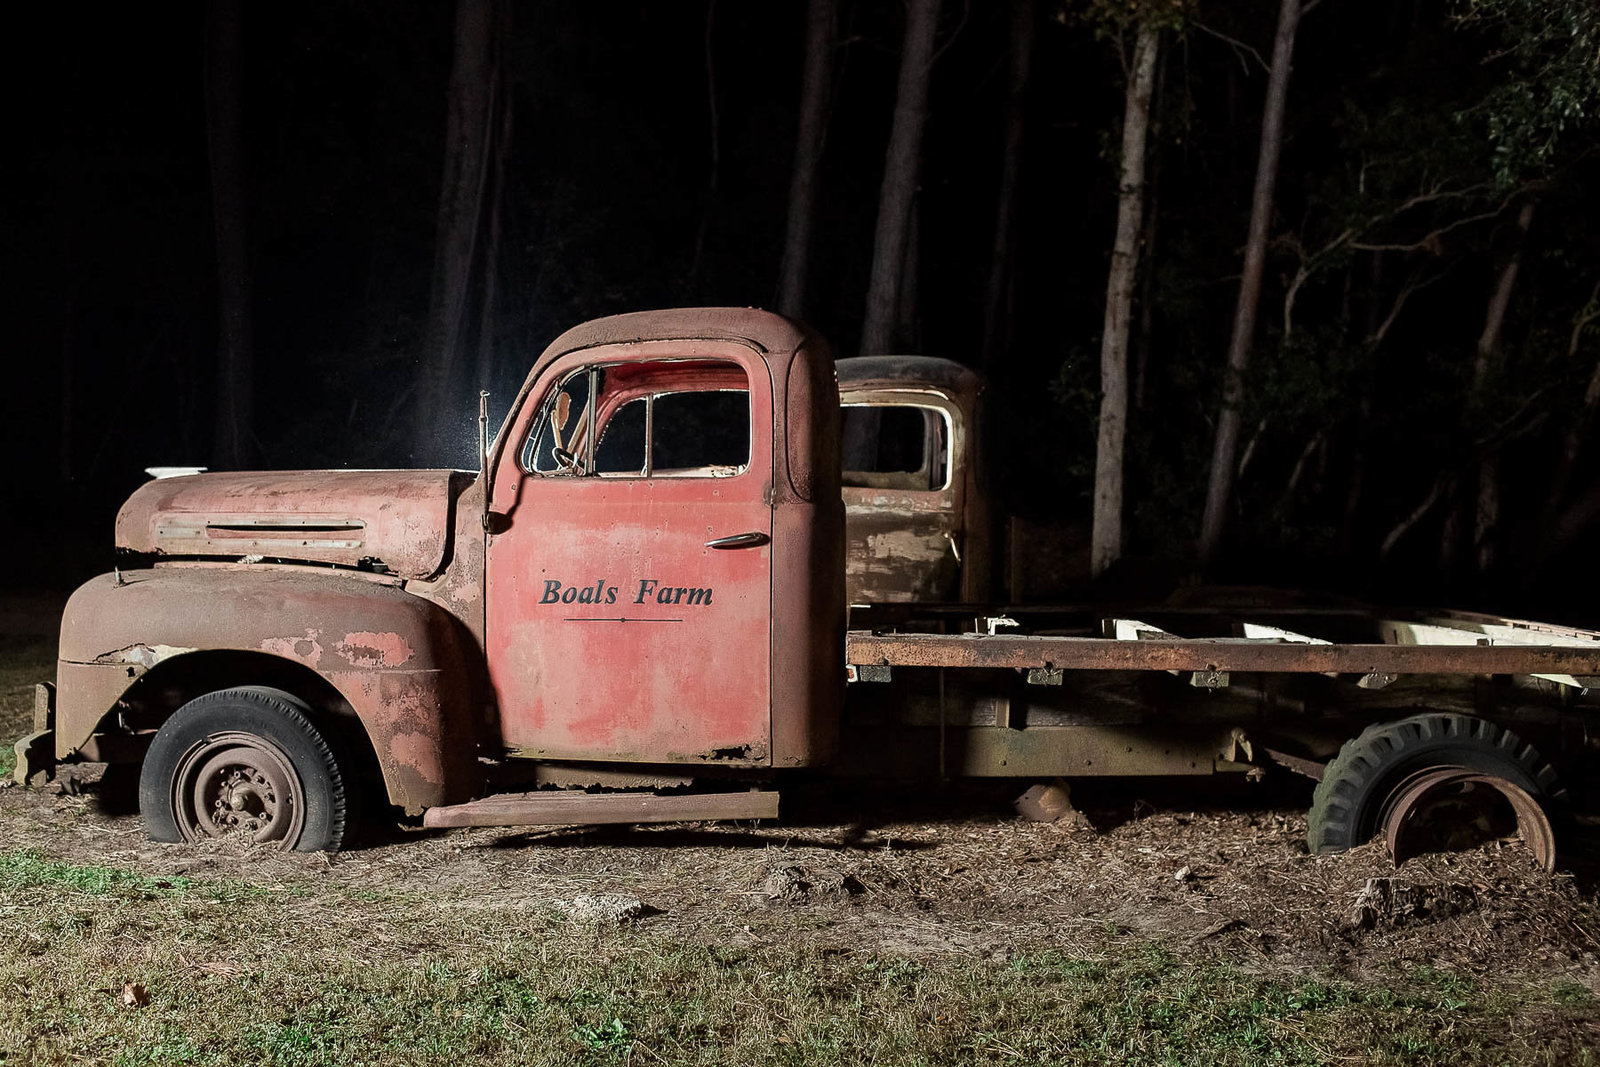 Rustic red truck sits in woods, Boals Farm, Charleston, South Carolina